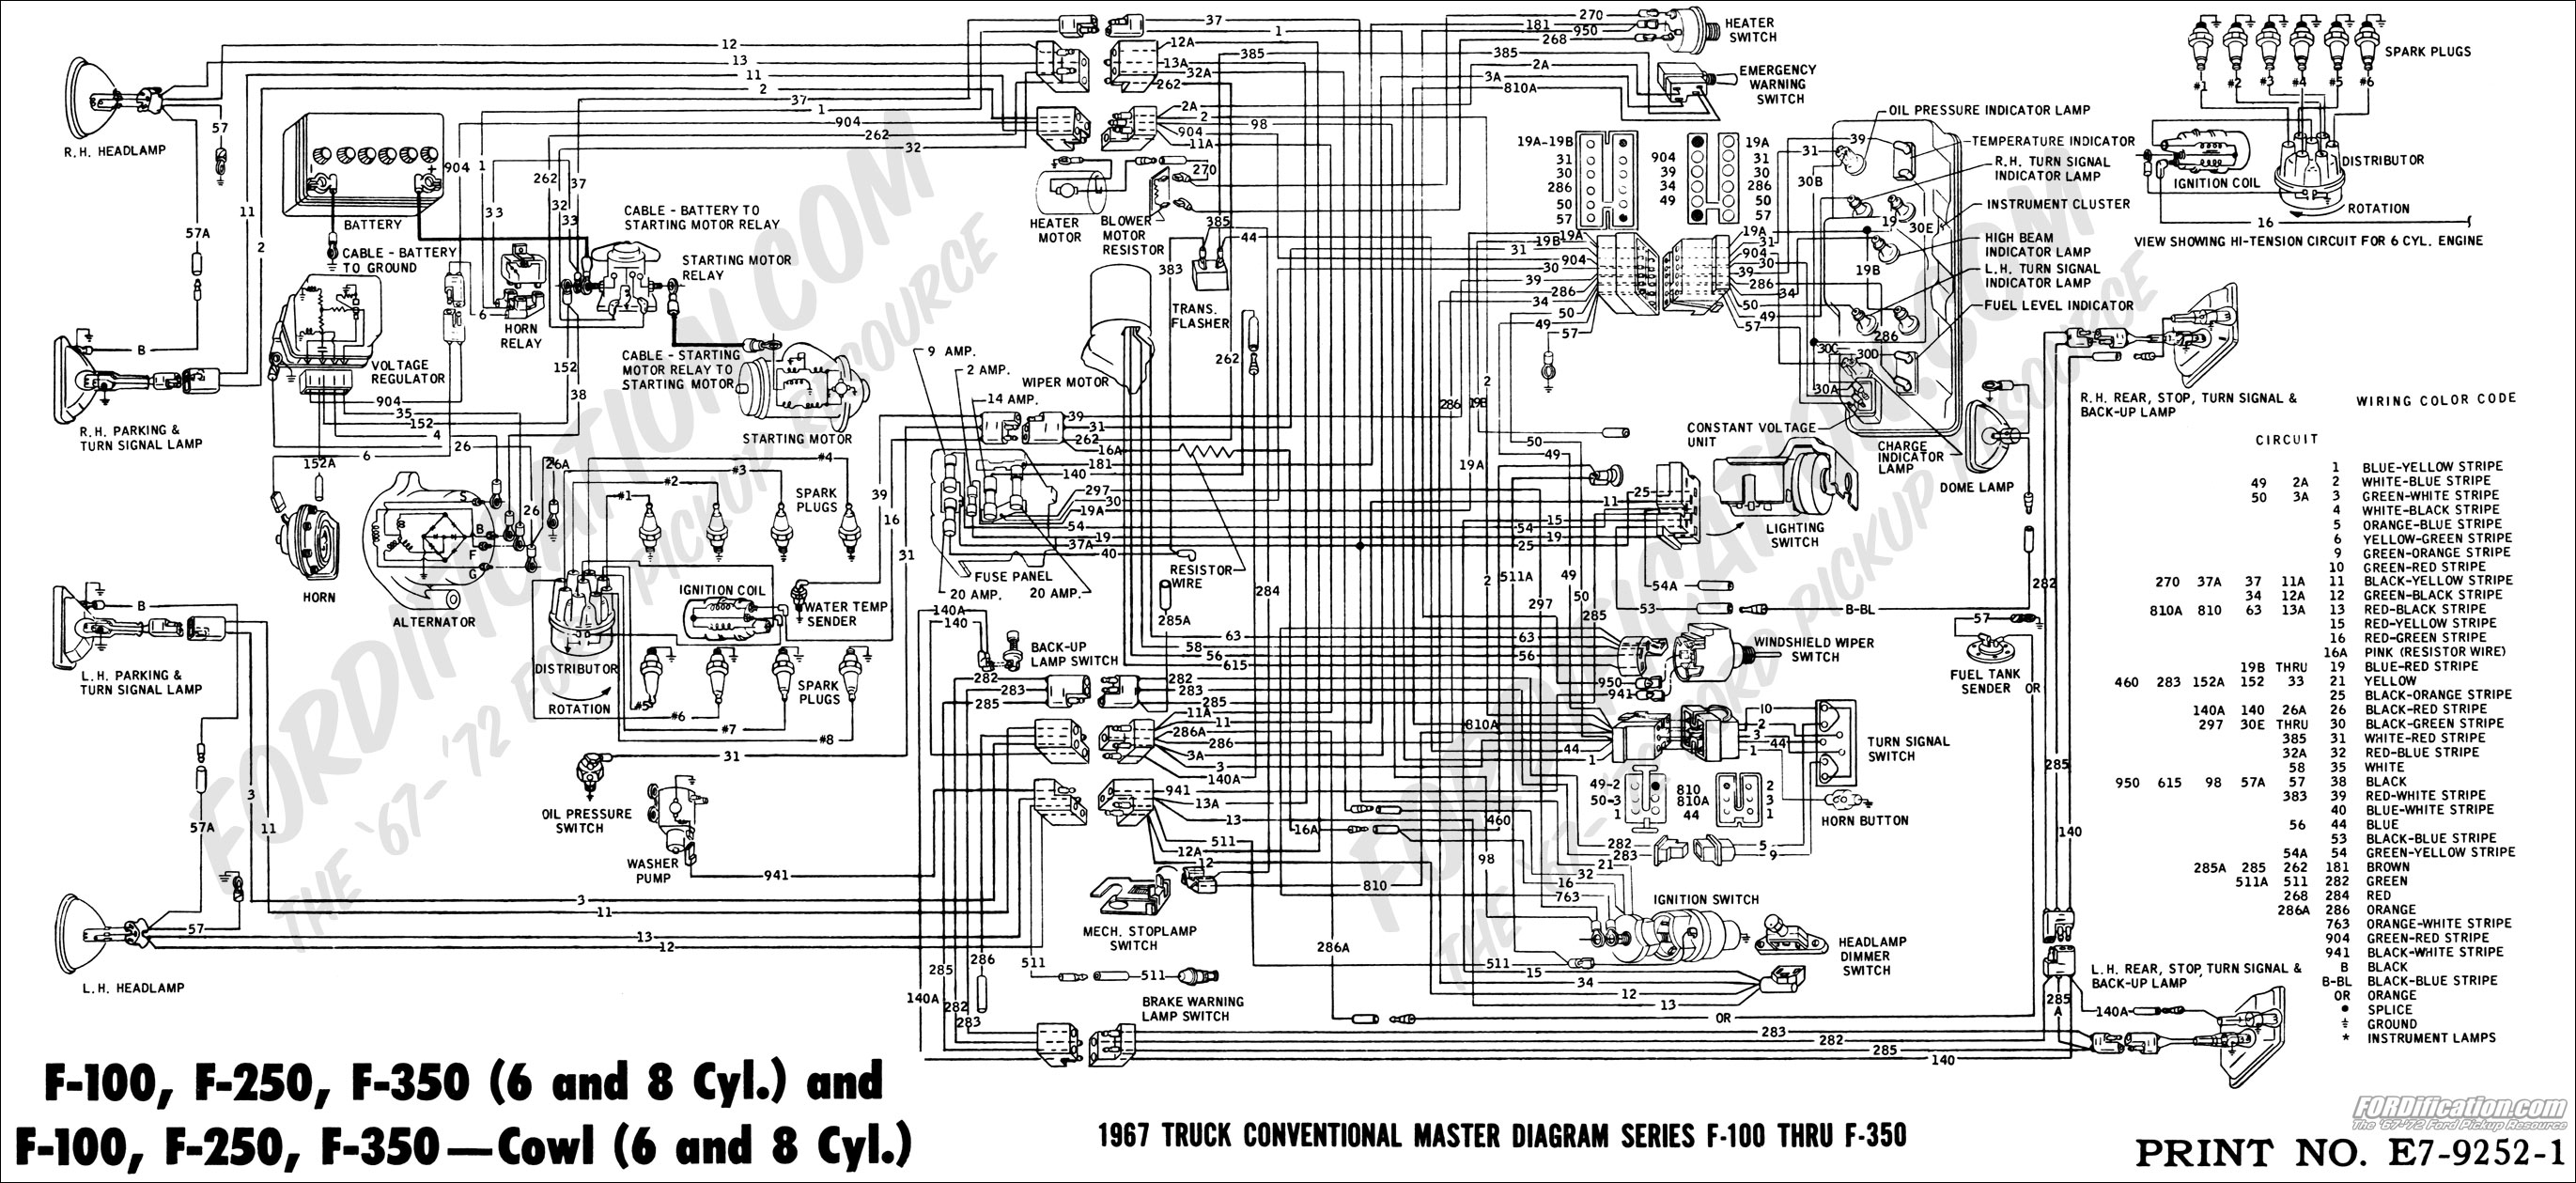 67masterdiagram 1983 ford f150 wiring diagram f150 alternator wiring diagram 2016 ford f250 trailer wiring diagram at alyssarenee.co